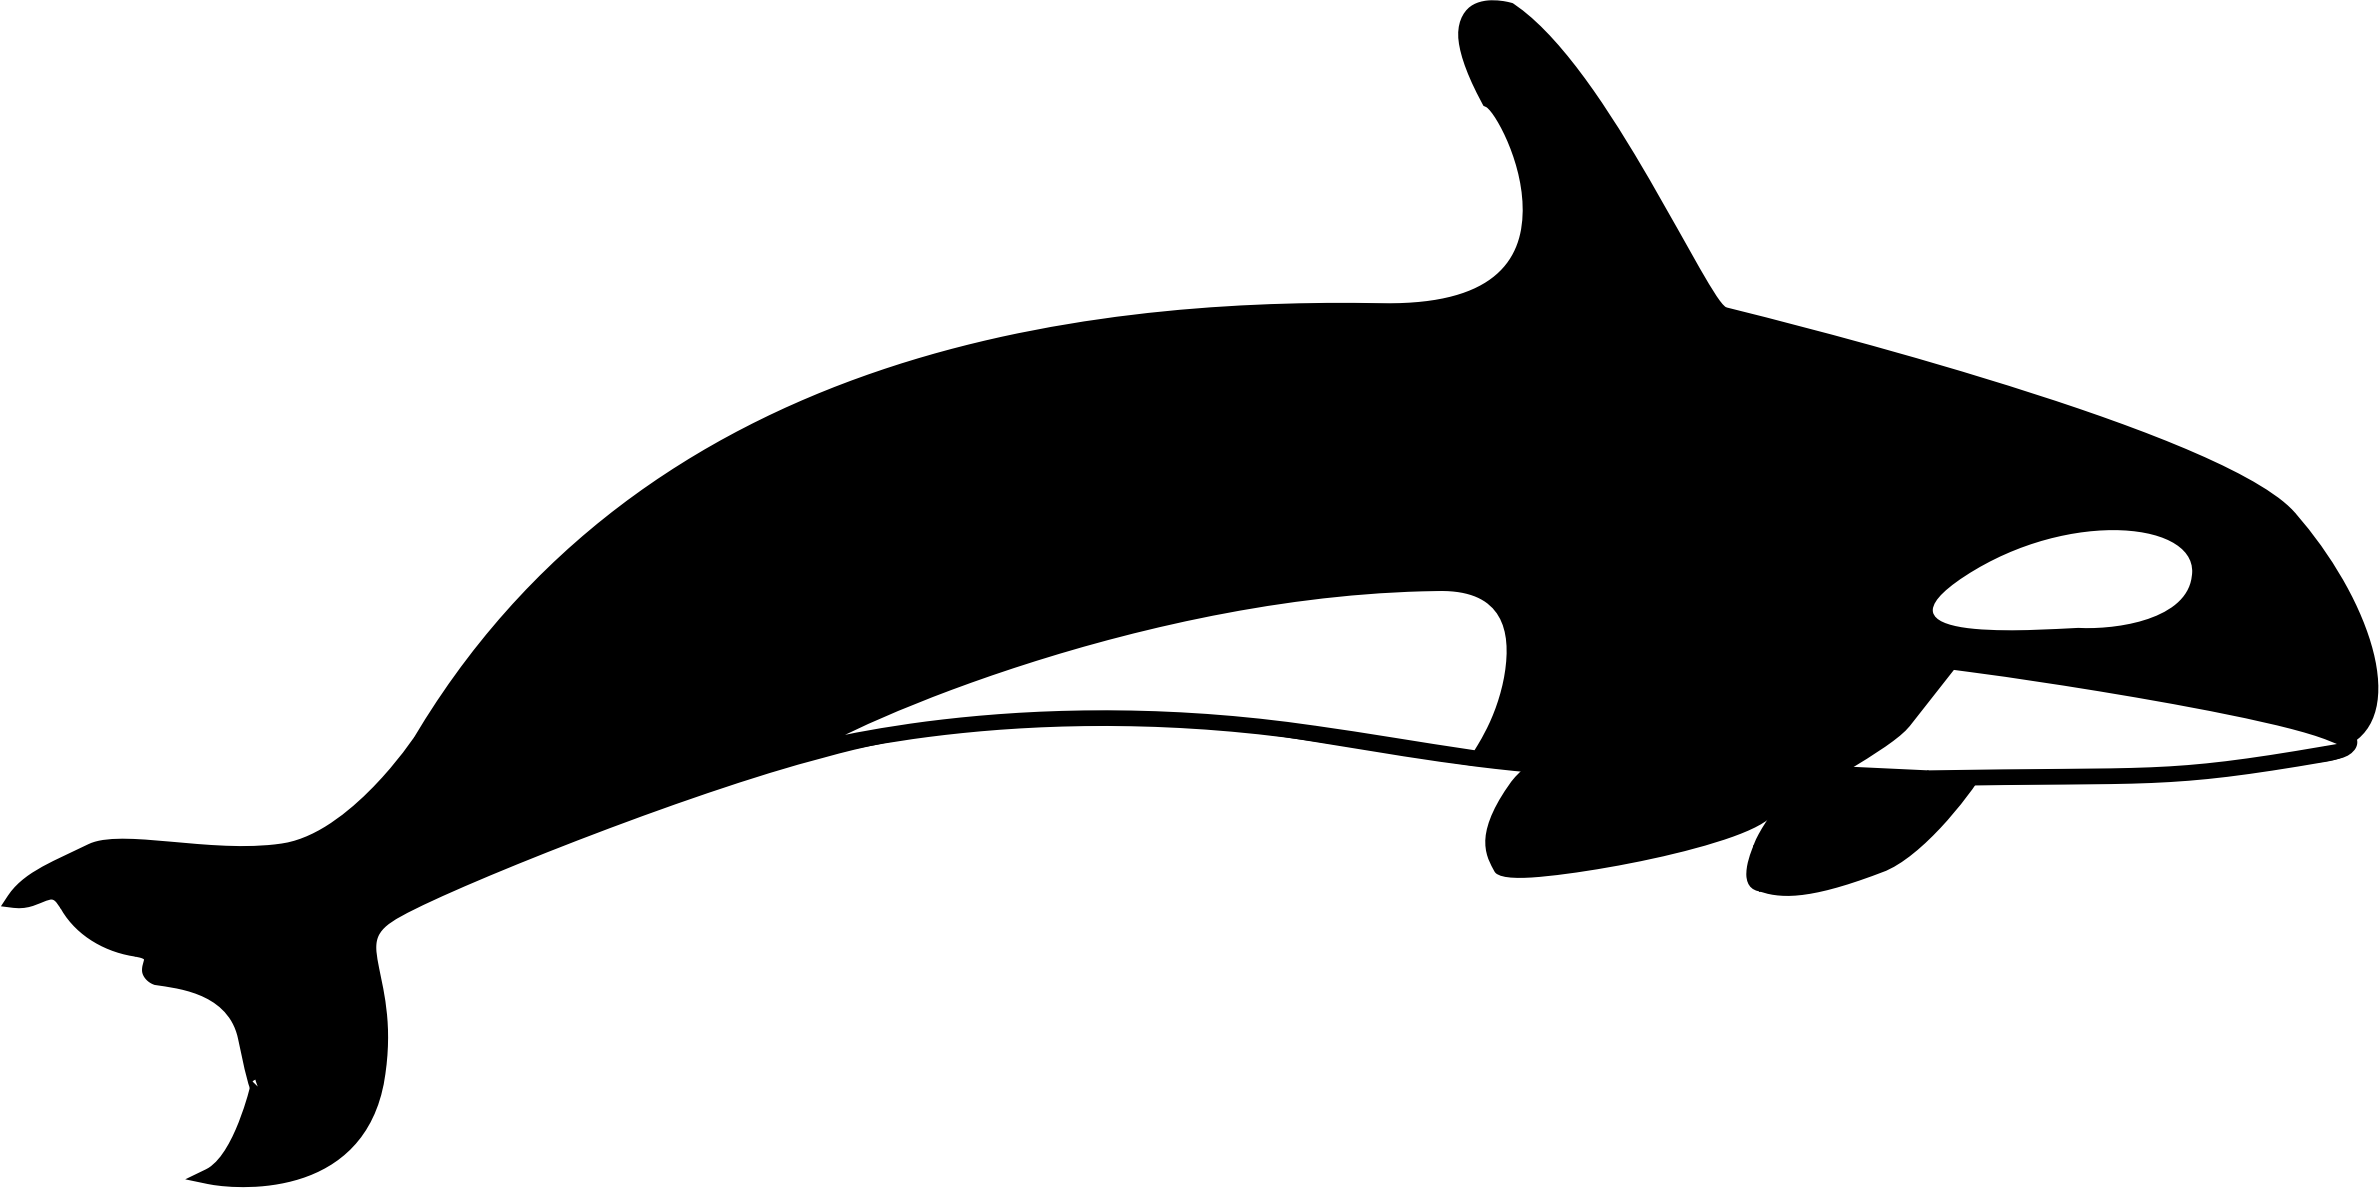 Dolphin clipart silhouette. The orca big image